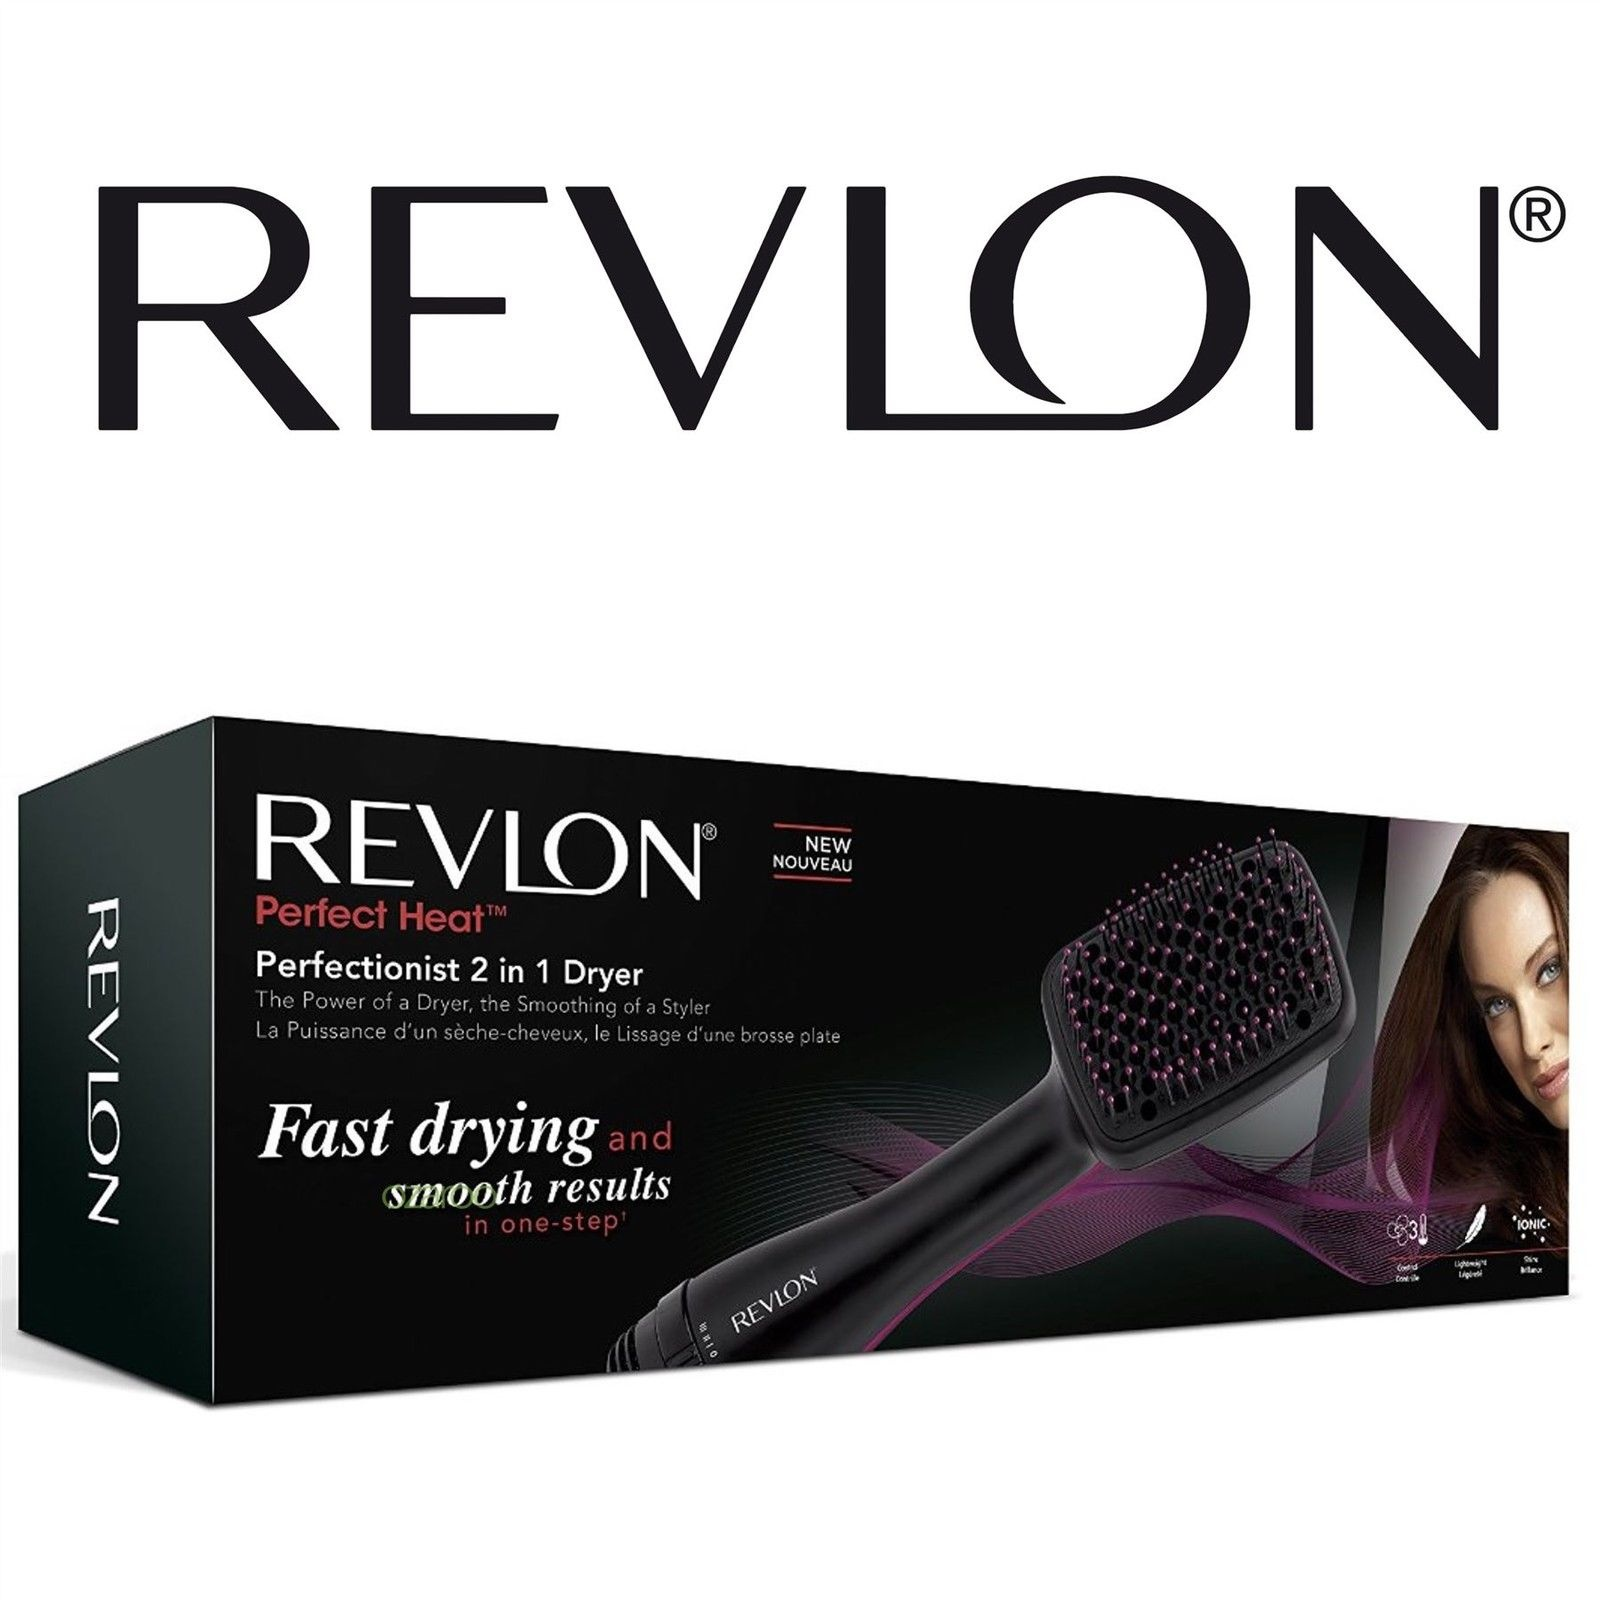 Womens Revlon Perfectionist 2 In 1 Ionising Paddle Brush Hair Dryer Rvha6475uk By Revlon Shop Online For Beauty In New Zealand